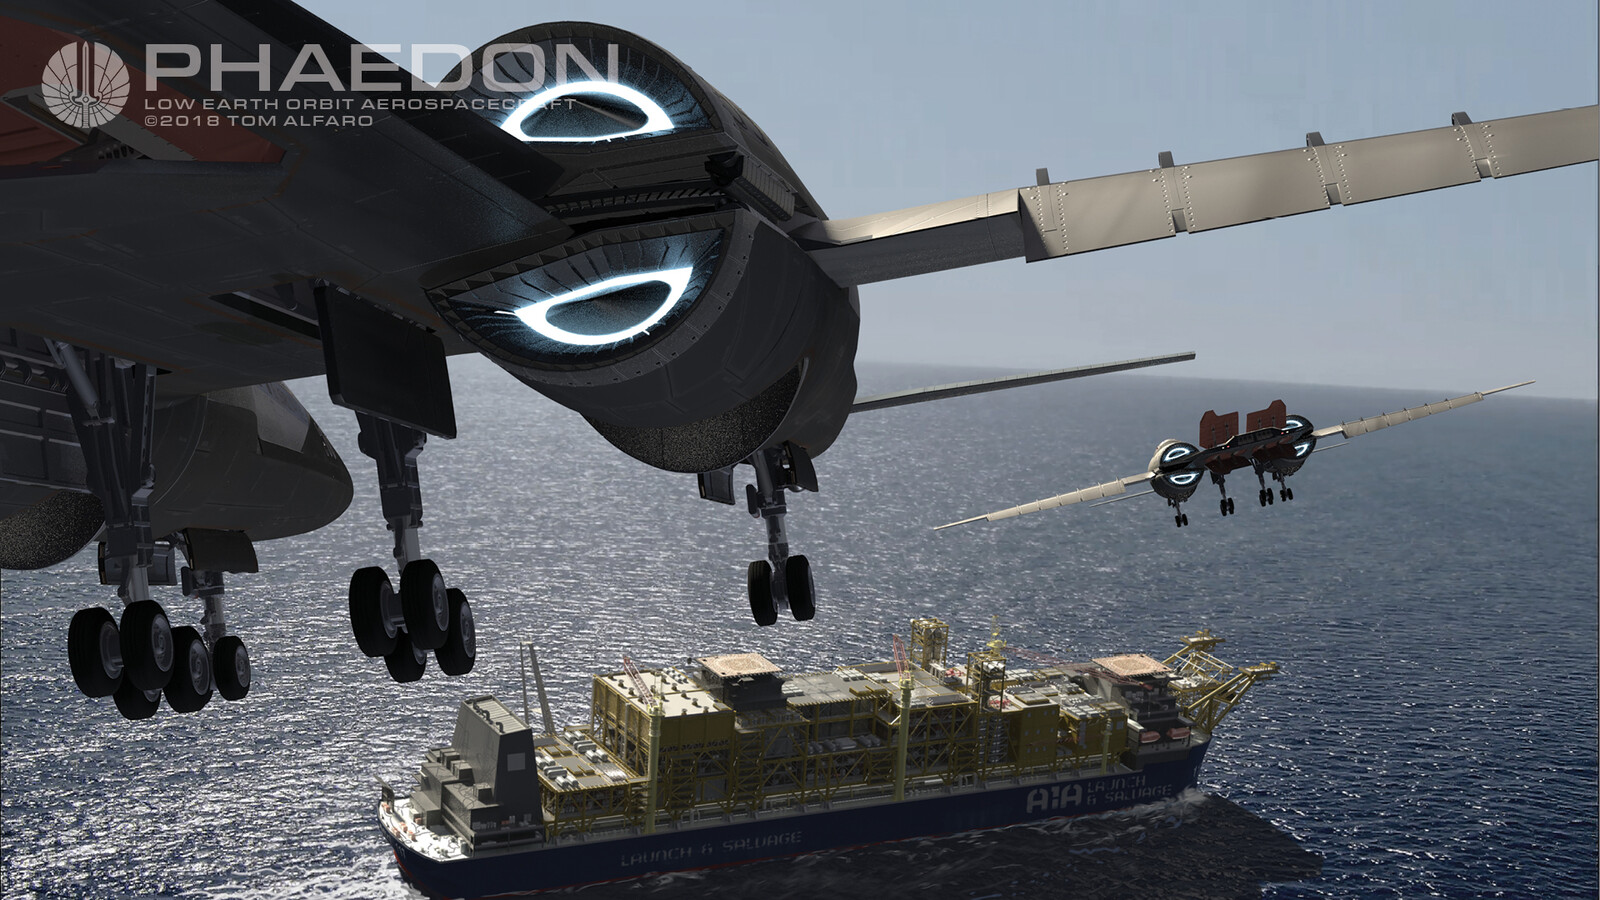 Another successful mission.  Both units (manned and drone) will return with salvage cargo, safely to their platform of origin, for a safe vertical landing.